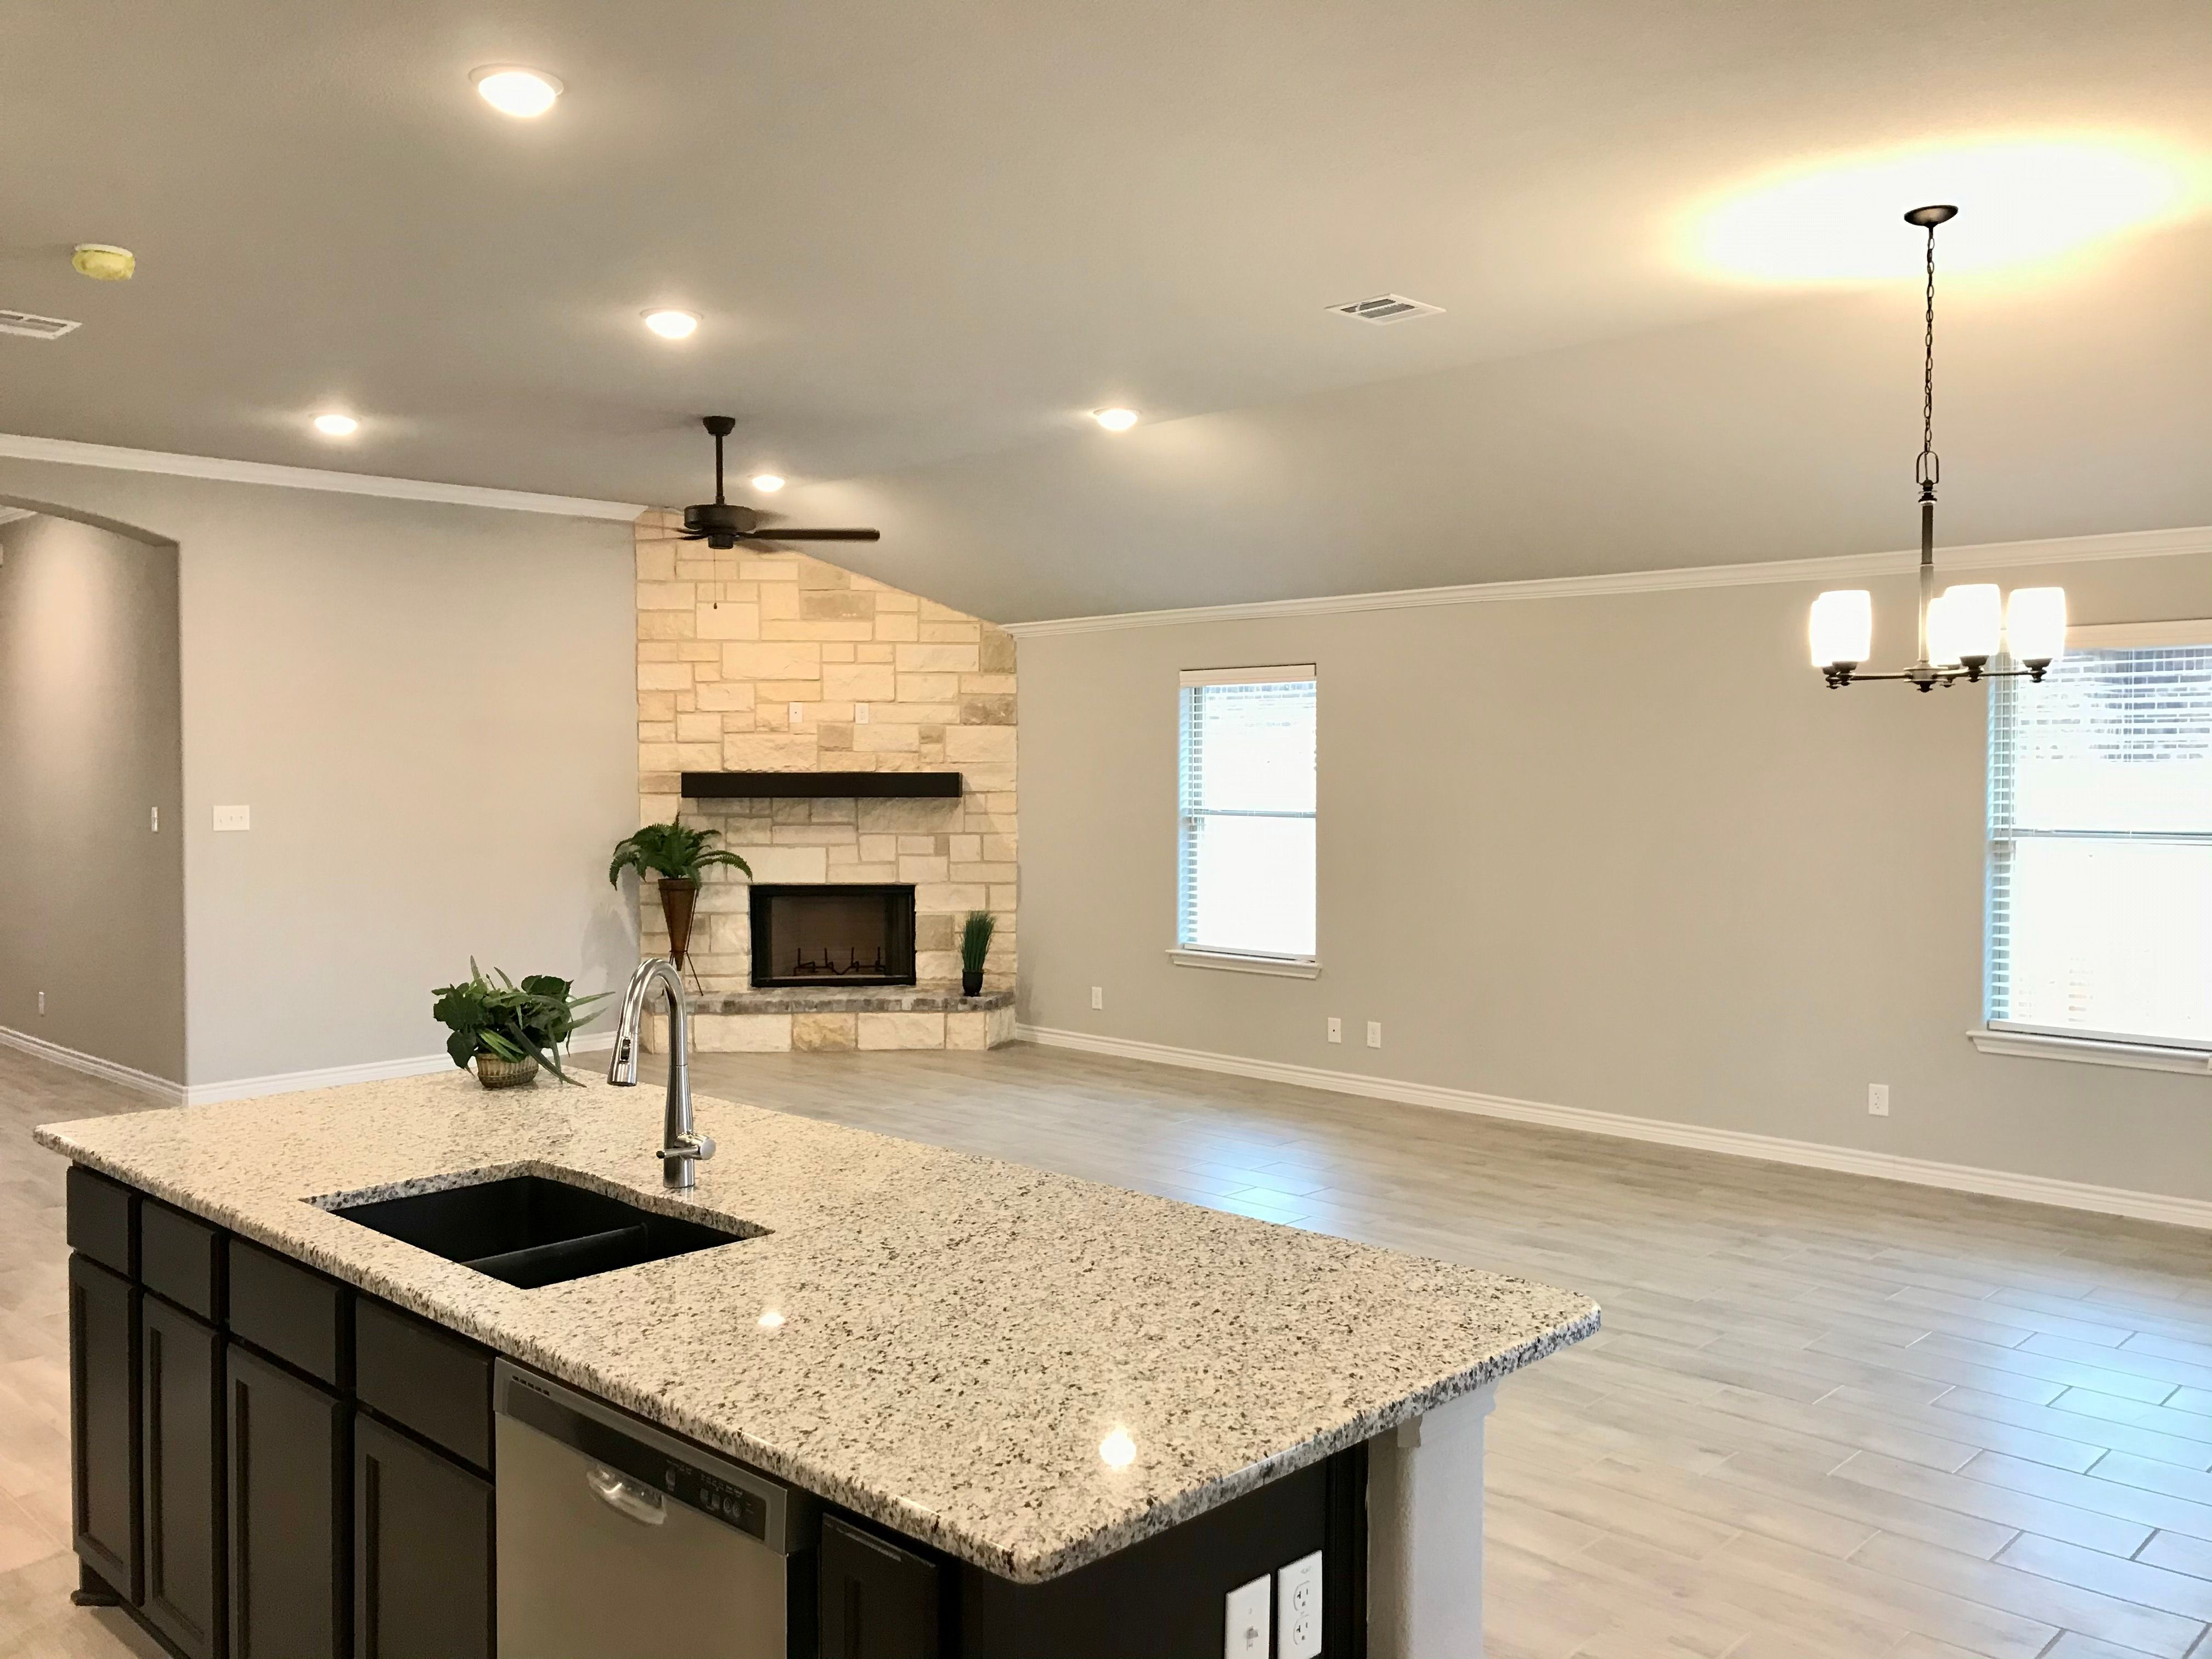 Kitchen featured in the San Bernard River By Ashford Homes in Killeen, TX